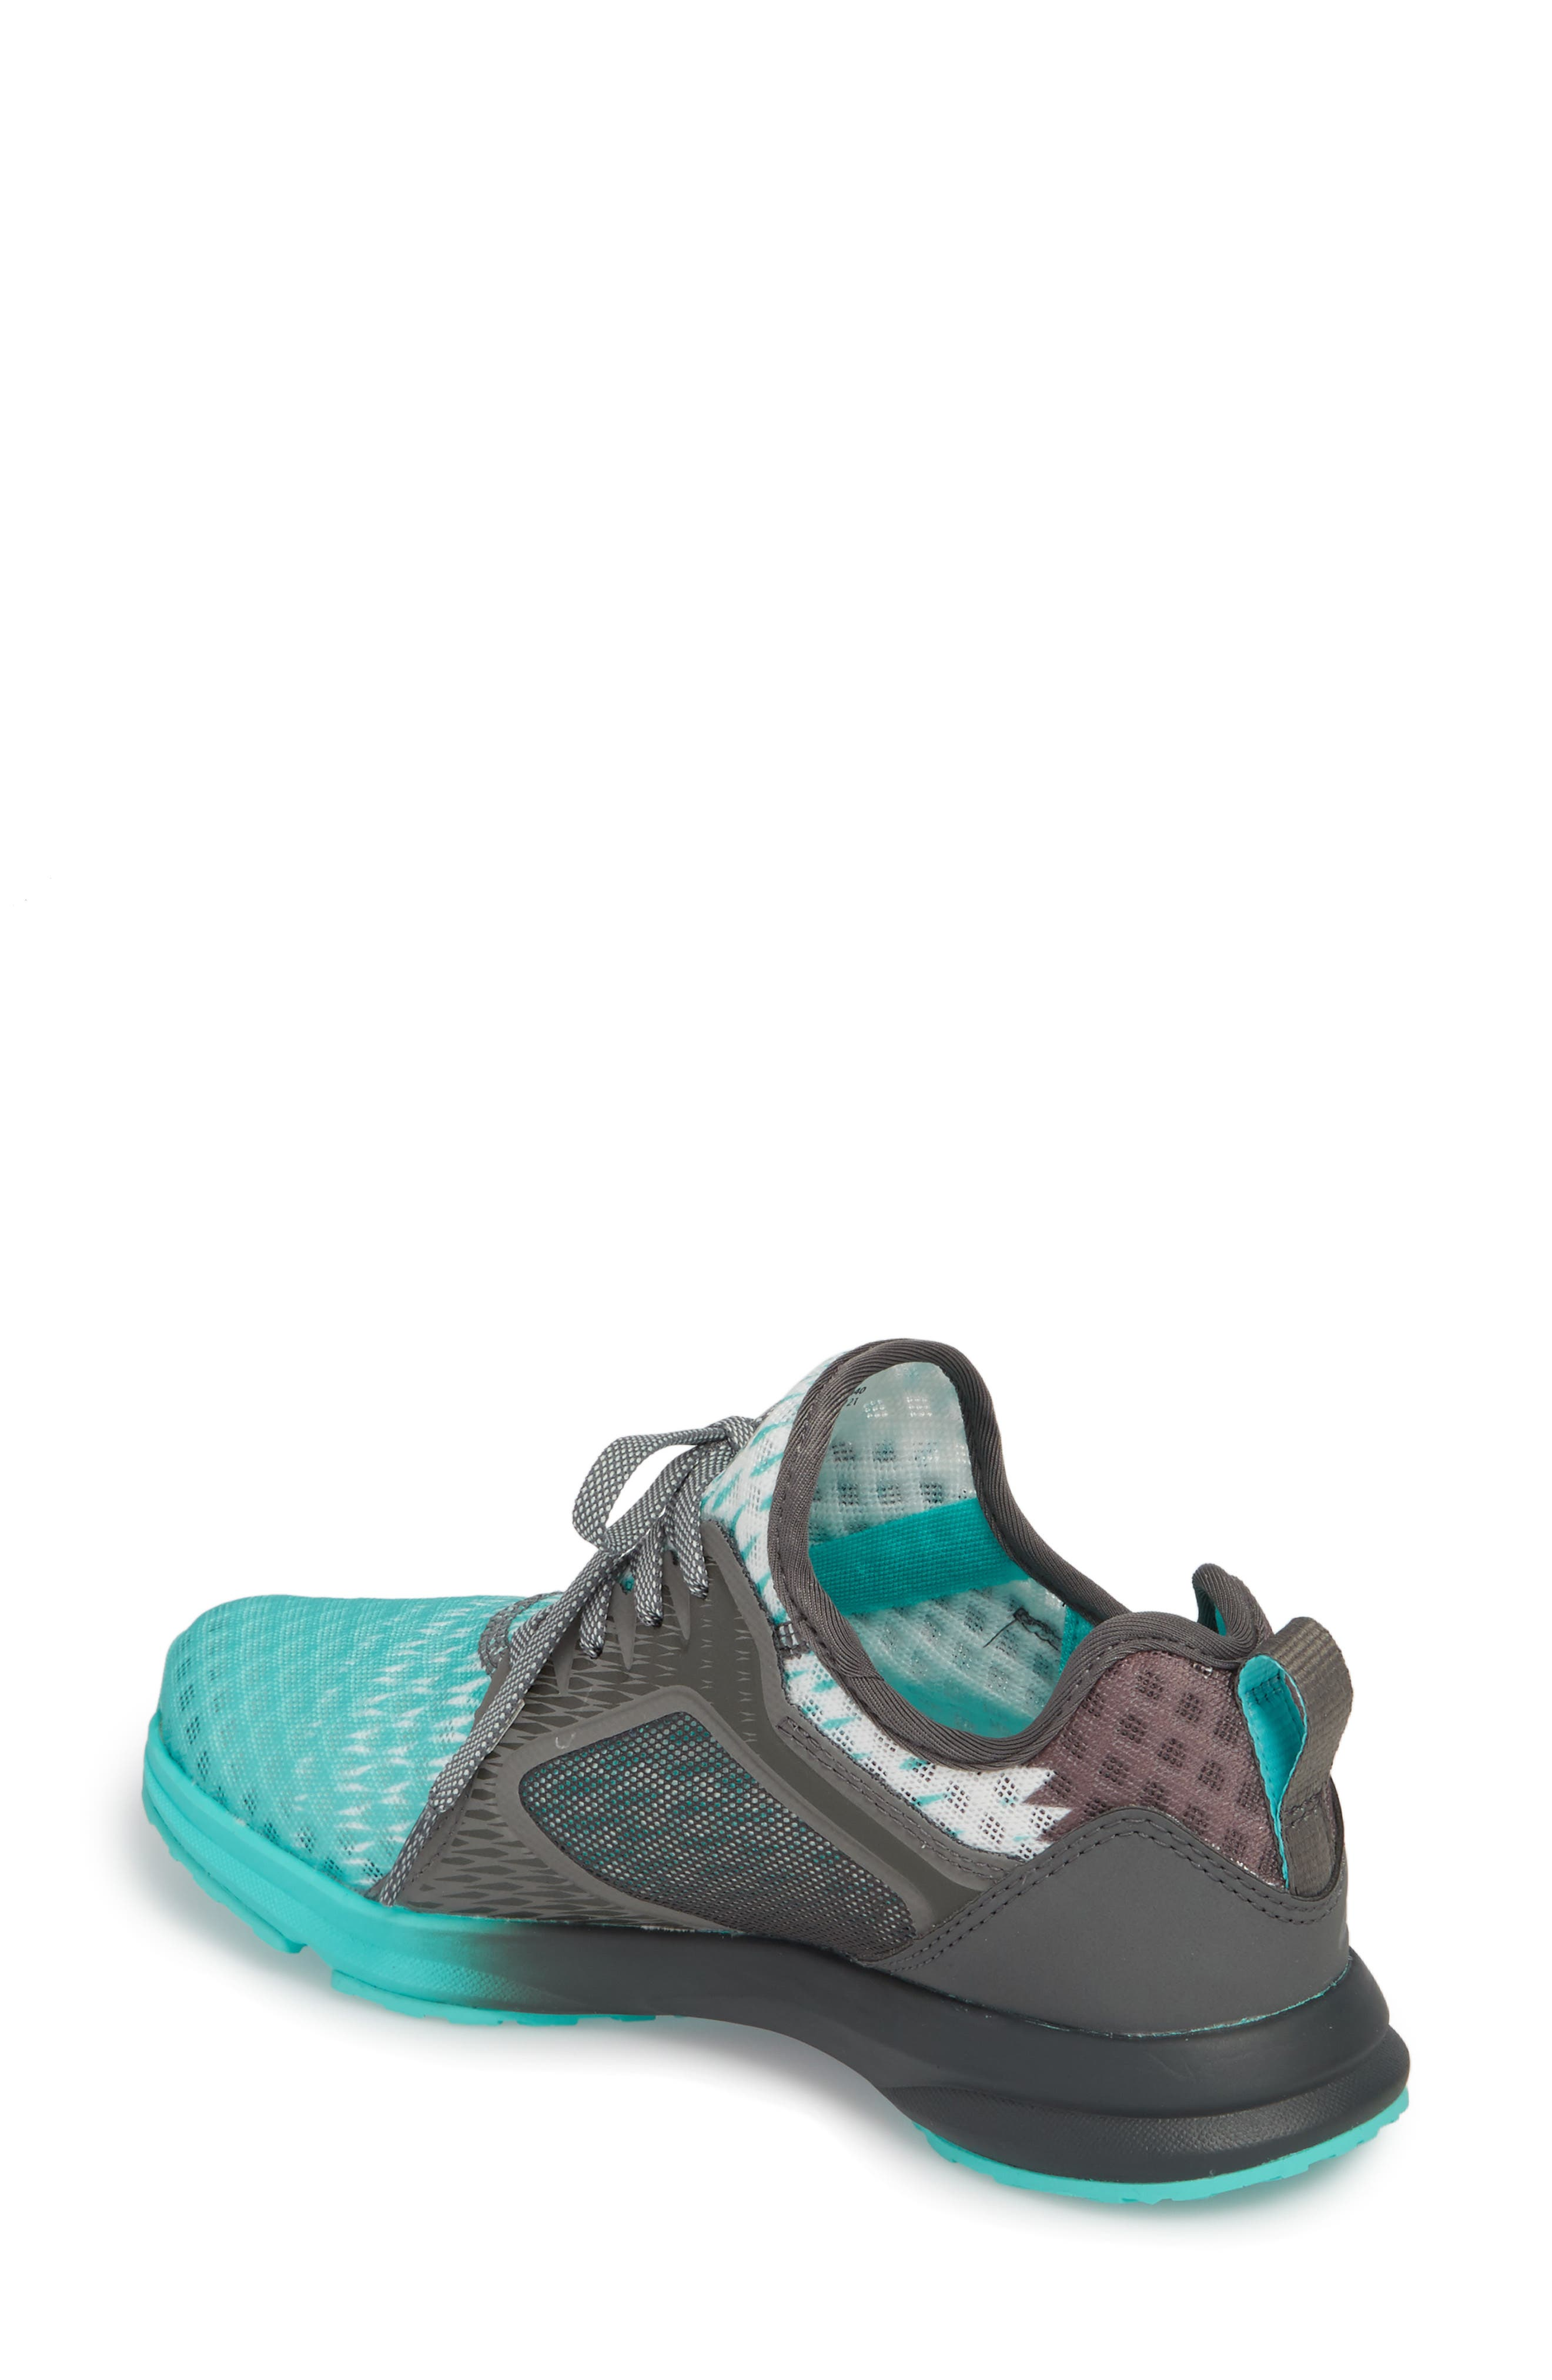 Fuse Ombré Sneaker,                             Alternate thumbnail 2, color,                             TURQUOISE MESH